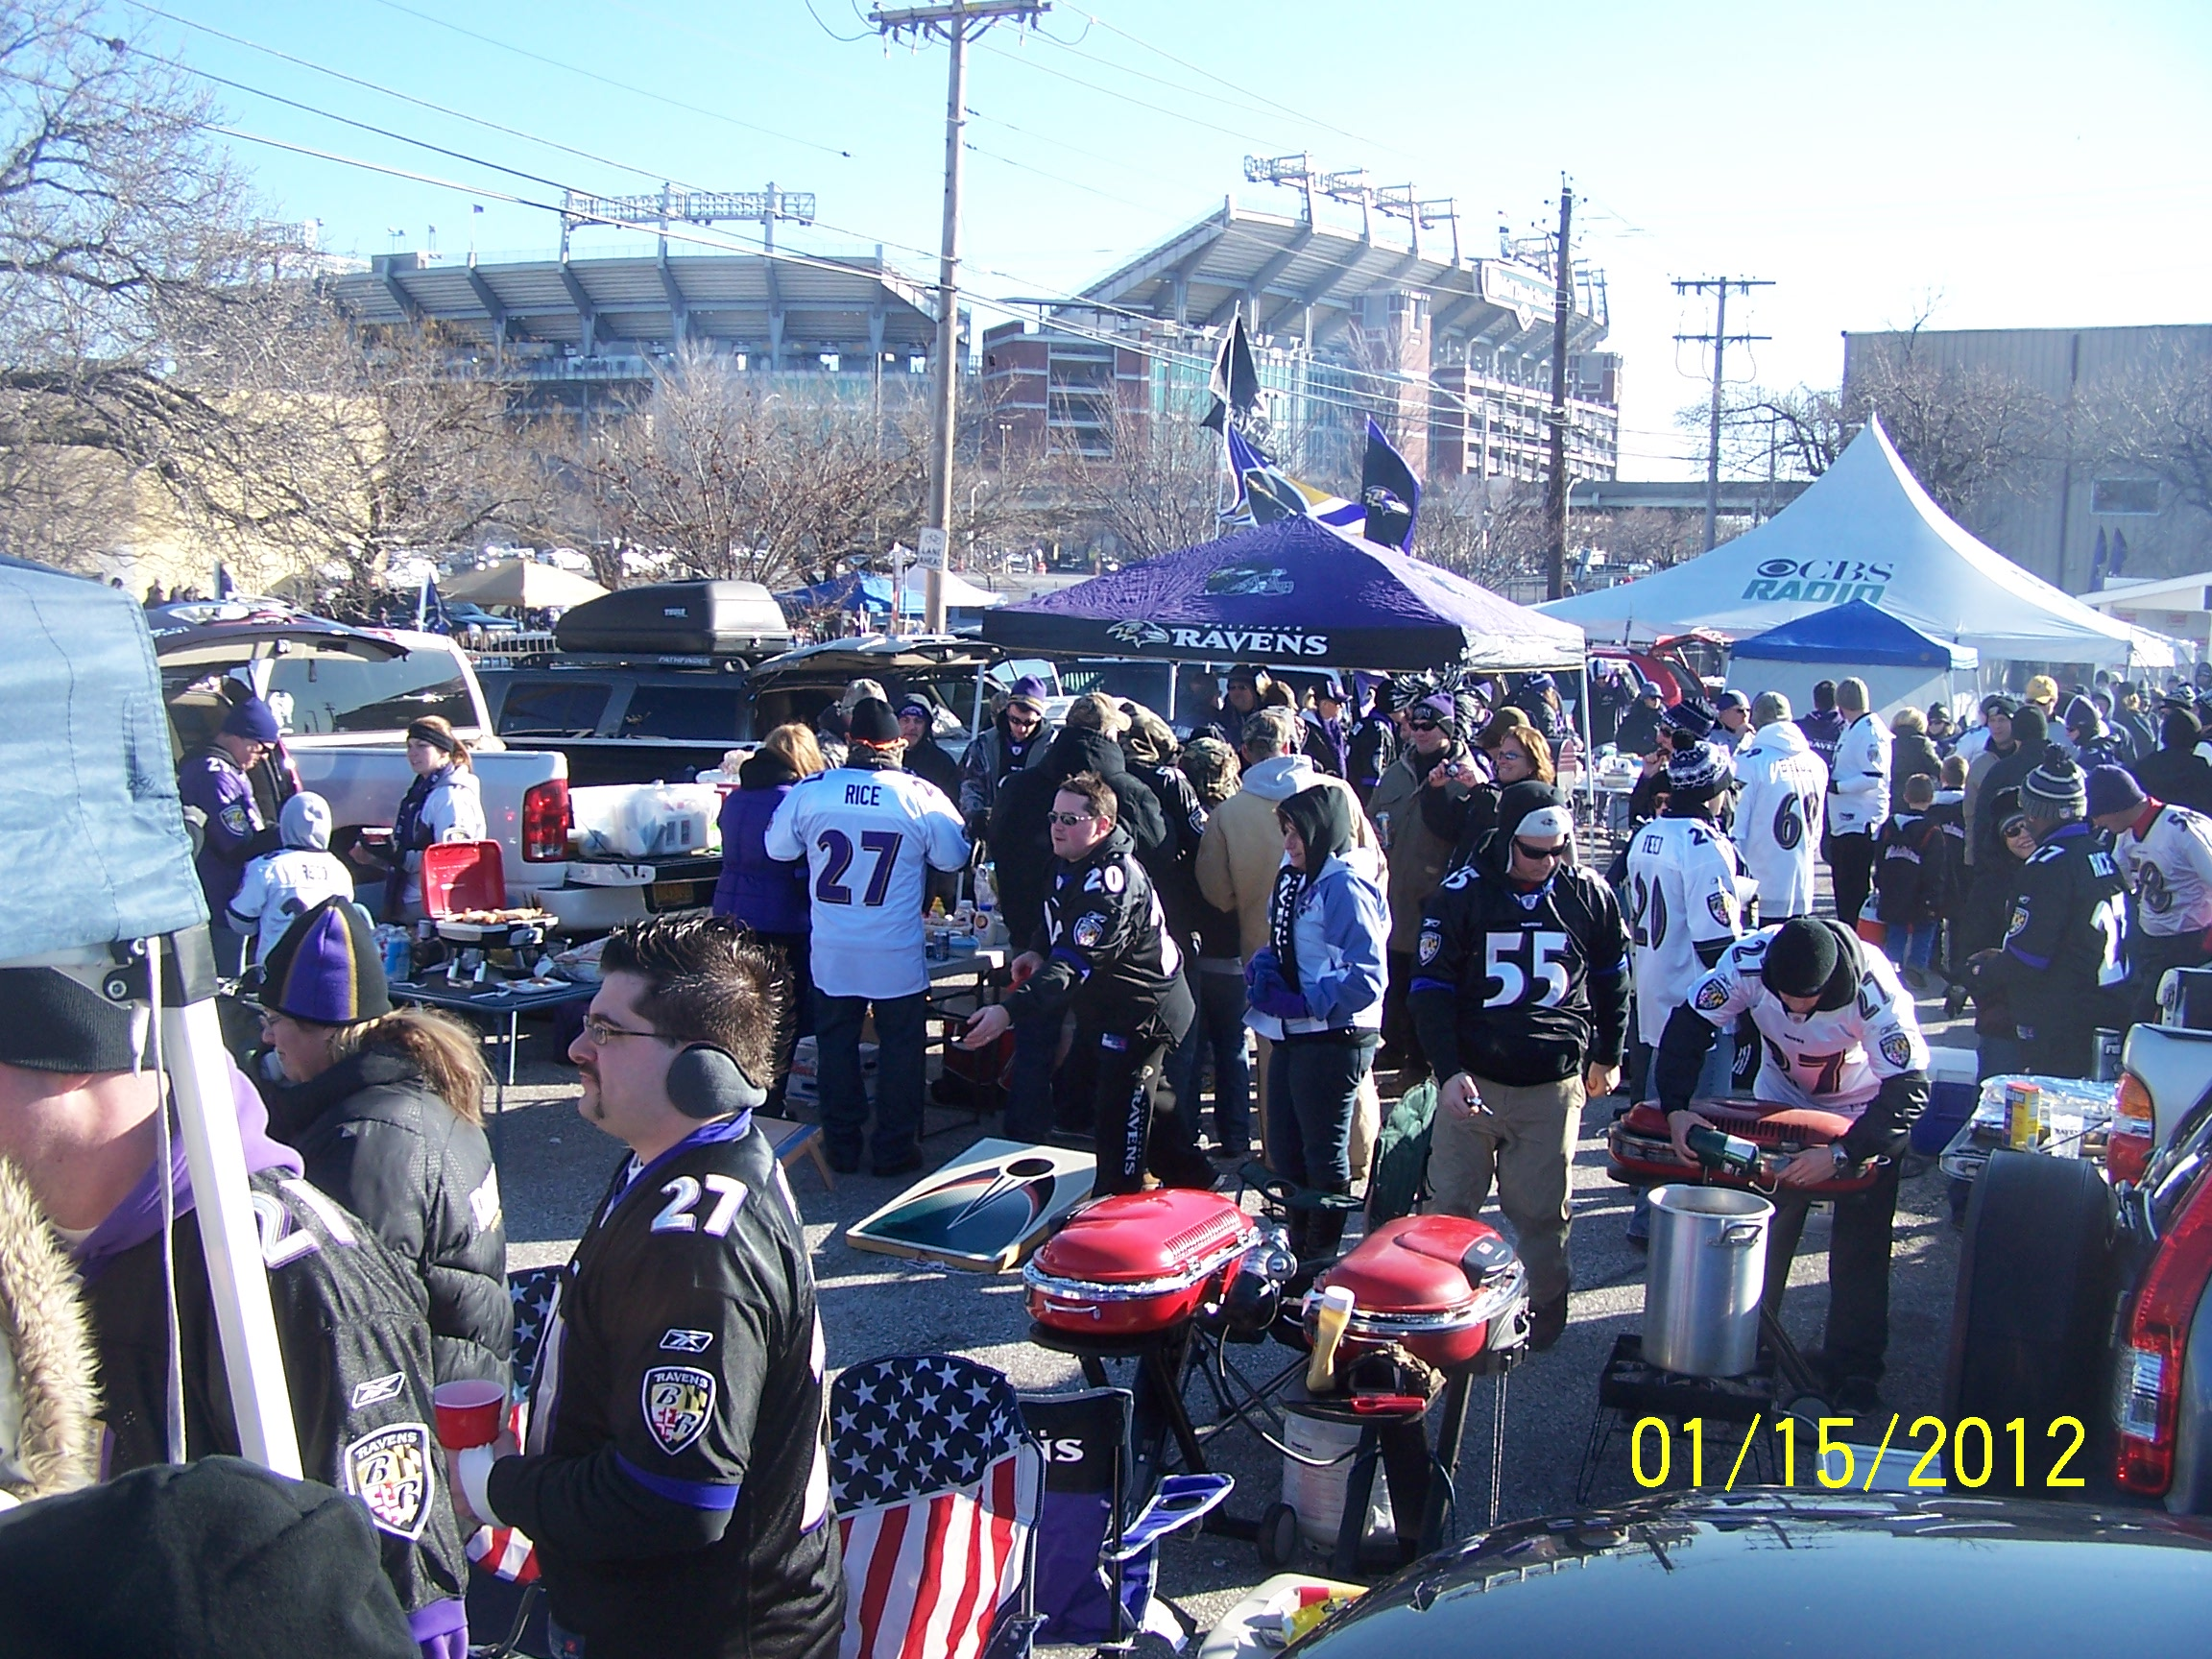 Baltimore Ravens: Tailgate Party | Family Finds Fun